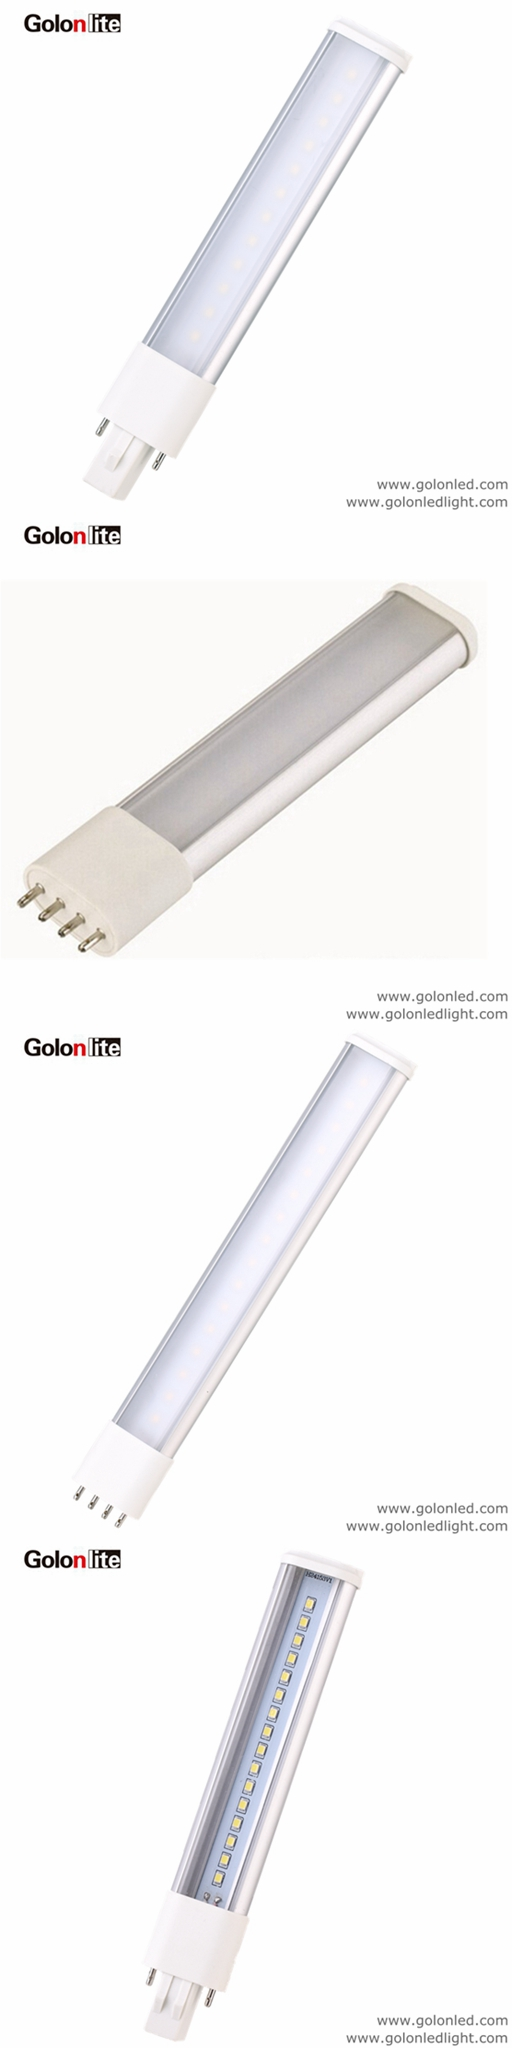 G23 Led Bulb Led Plug Lamp 2 Pins 6w Replace Pls 11w 13w 180mm Long 3 Years Warranty Factory Price G23 Led Bulb 6wg23 Led Bulb G23 Socket Led Led Bulb Lamp